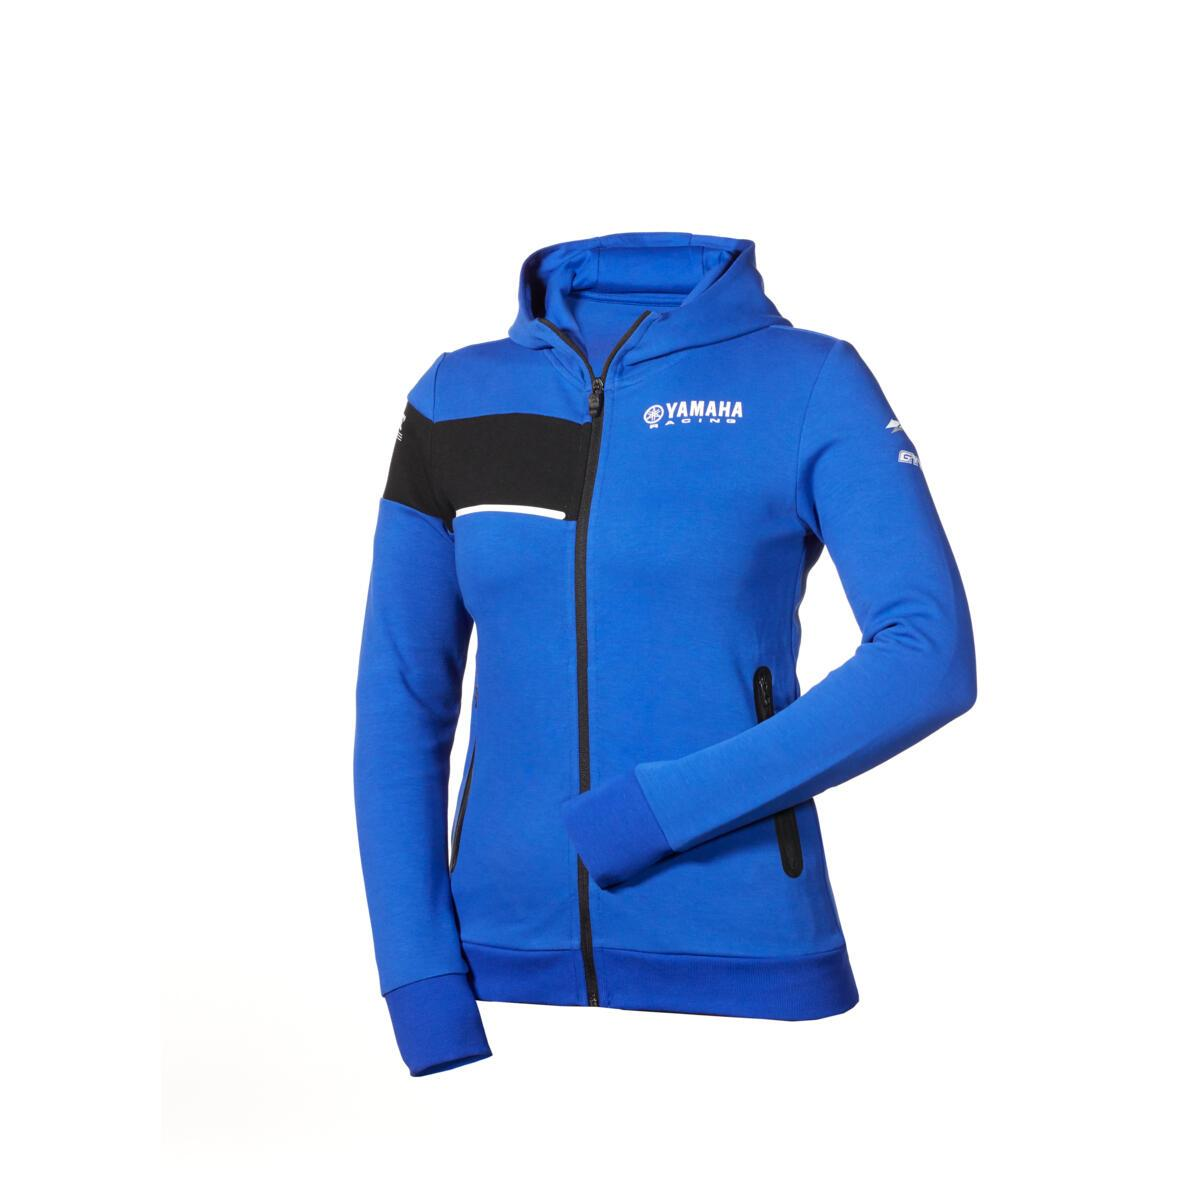 Paddock Blue Female Hoody